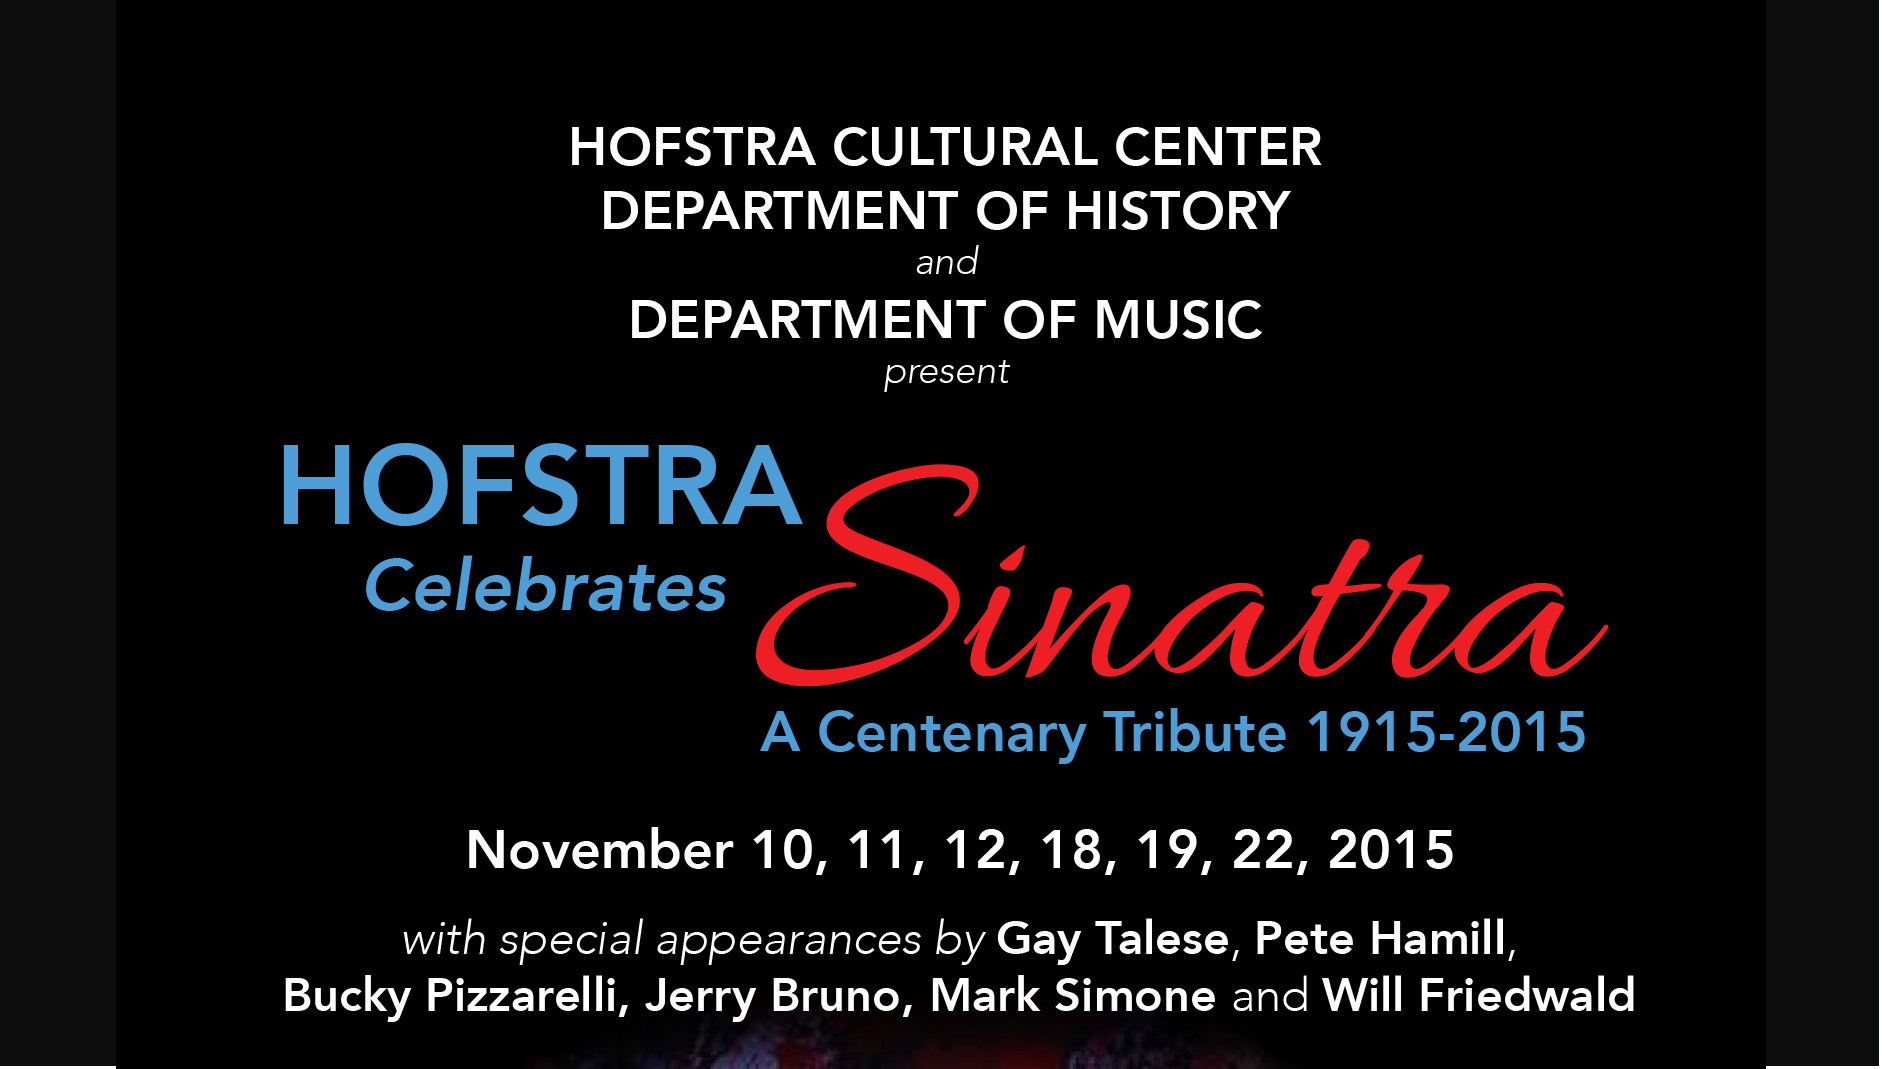 hofstra university choir and string orchestra essay